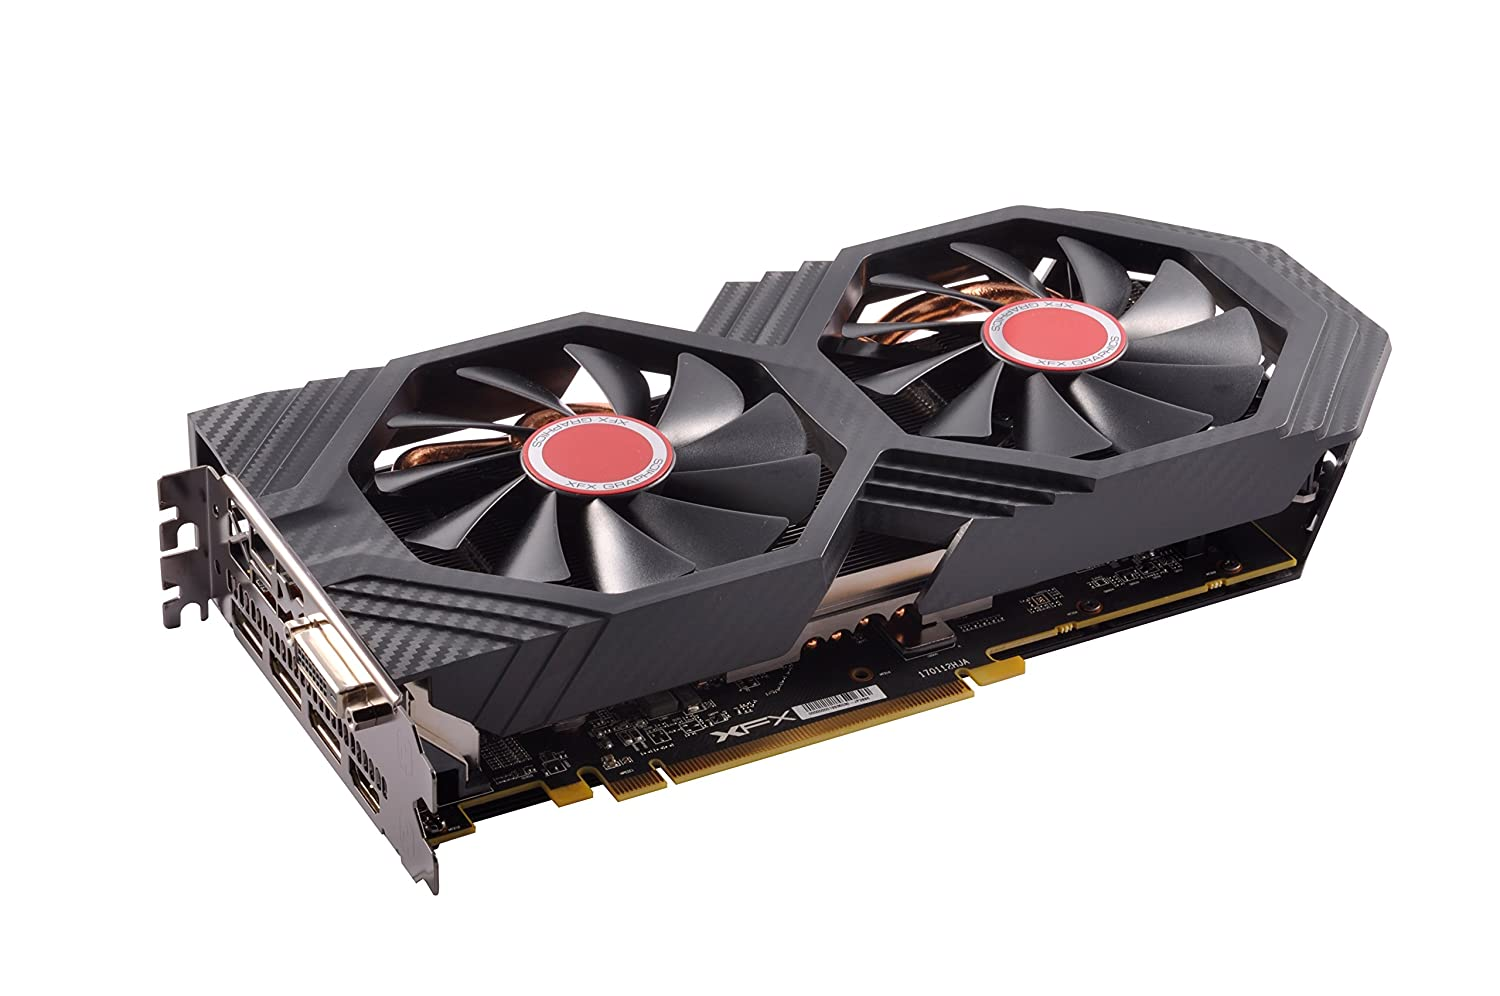 XFX GTS XXX Edition RX 580 8GB